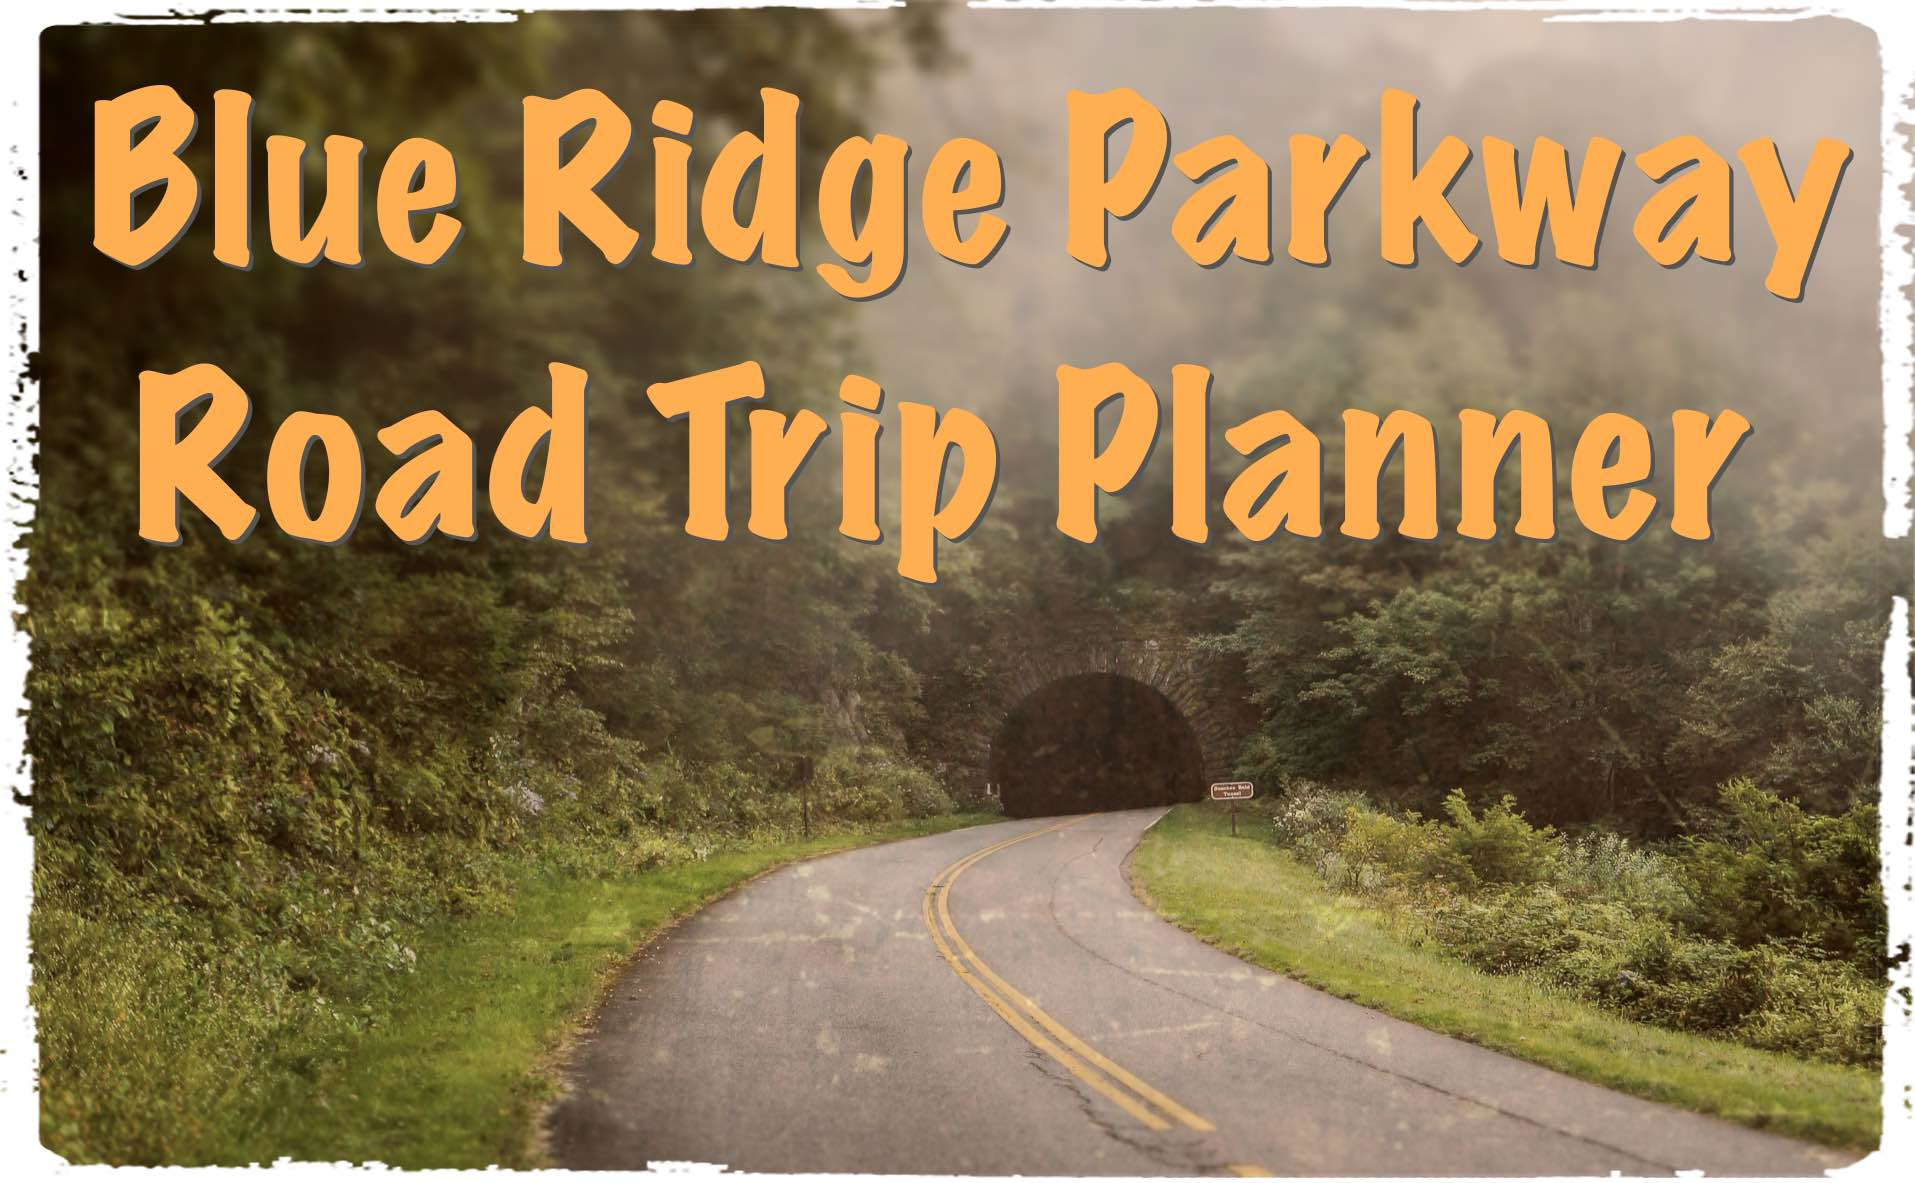 Blue Ridge Parkway Road Trip Planner